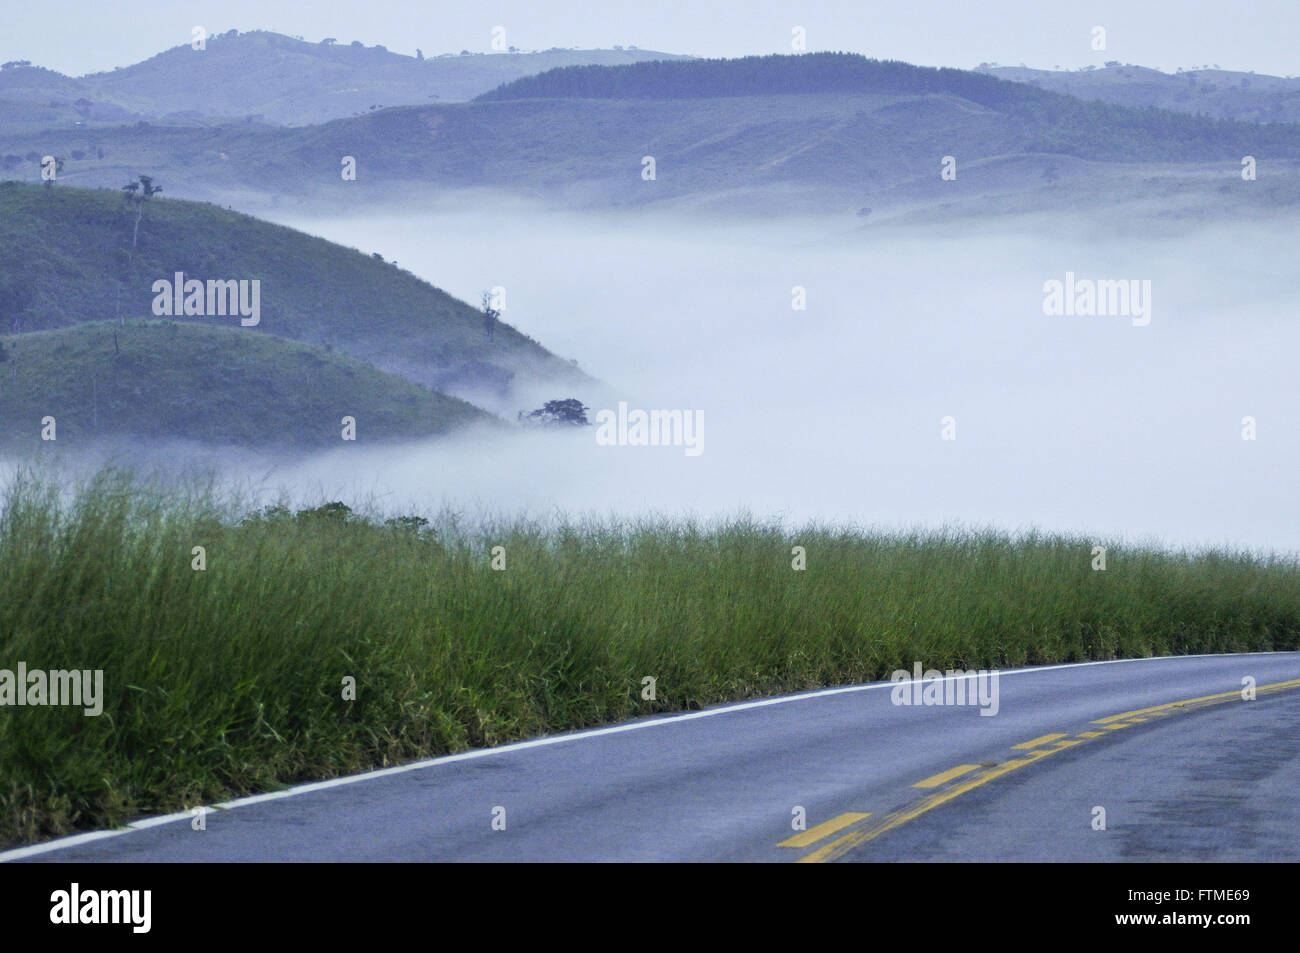 Early morning with fog on the highway MG-341 - Stock Image